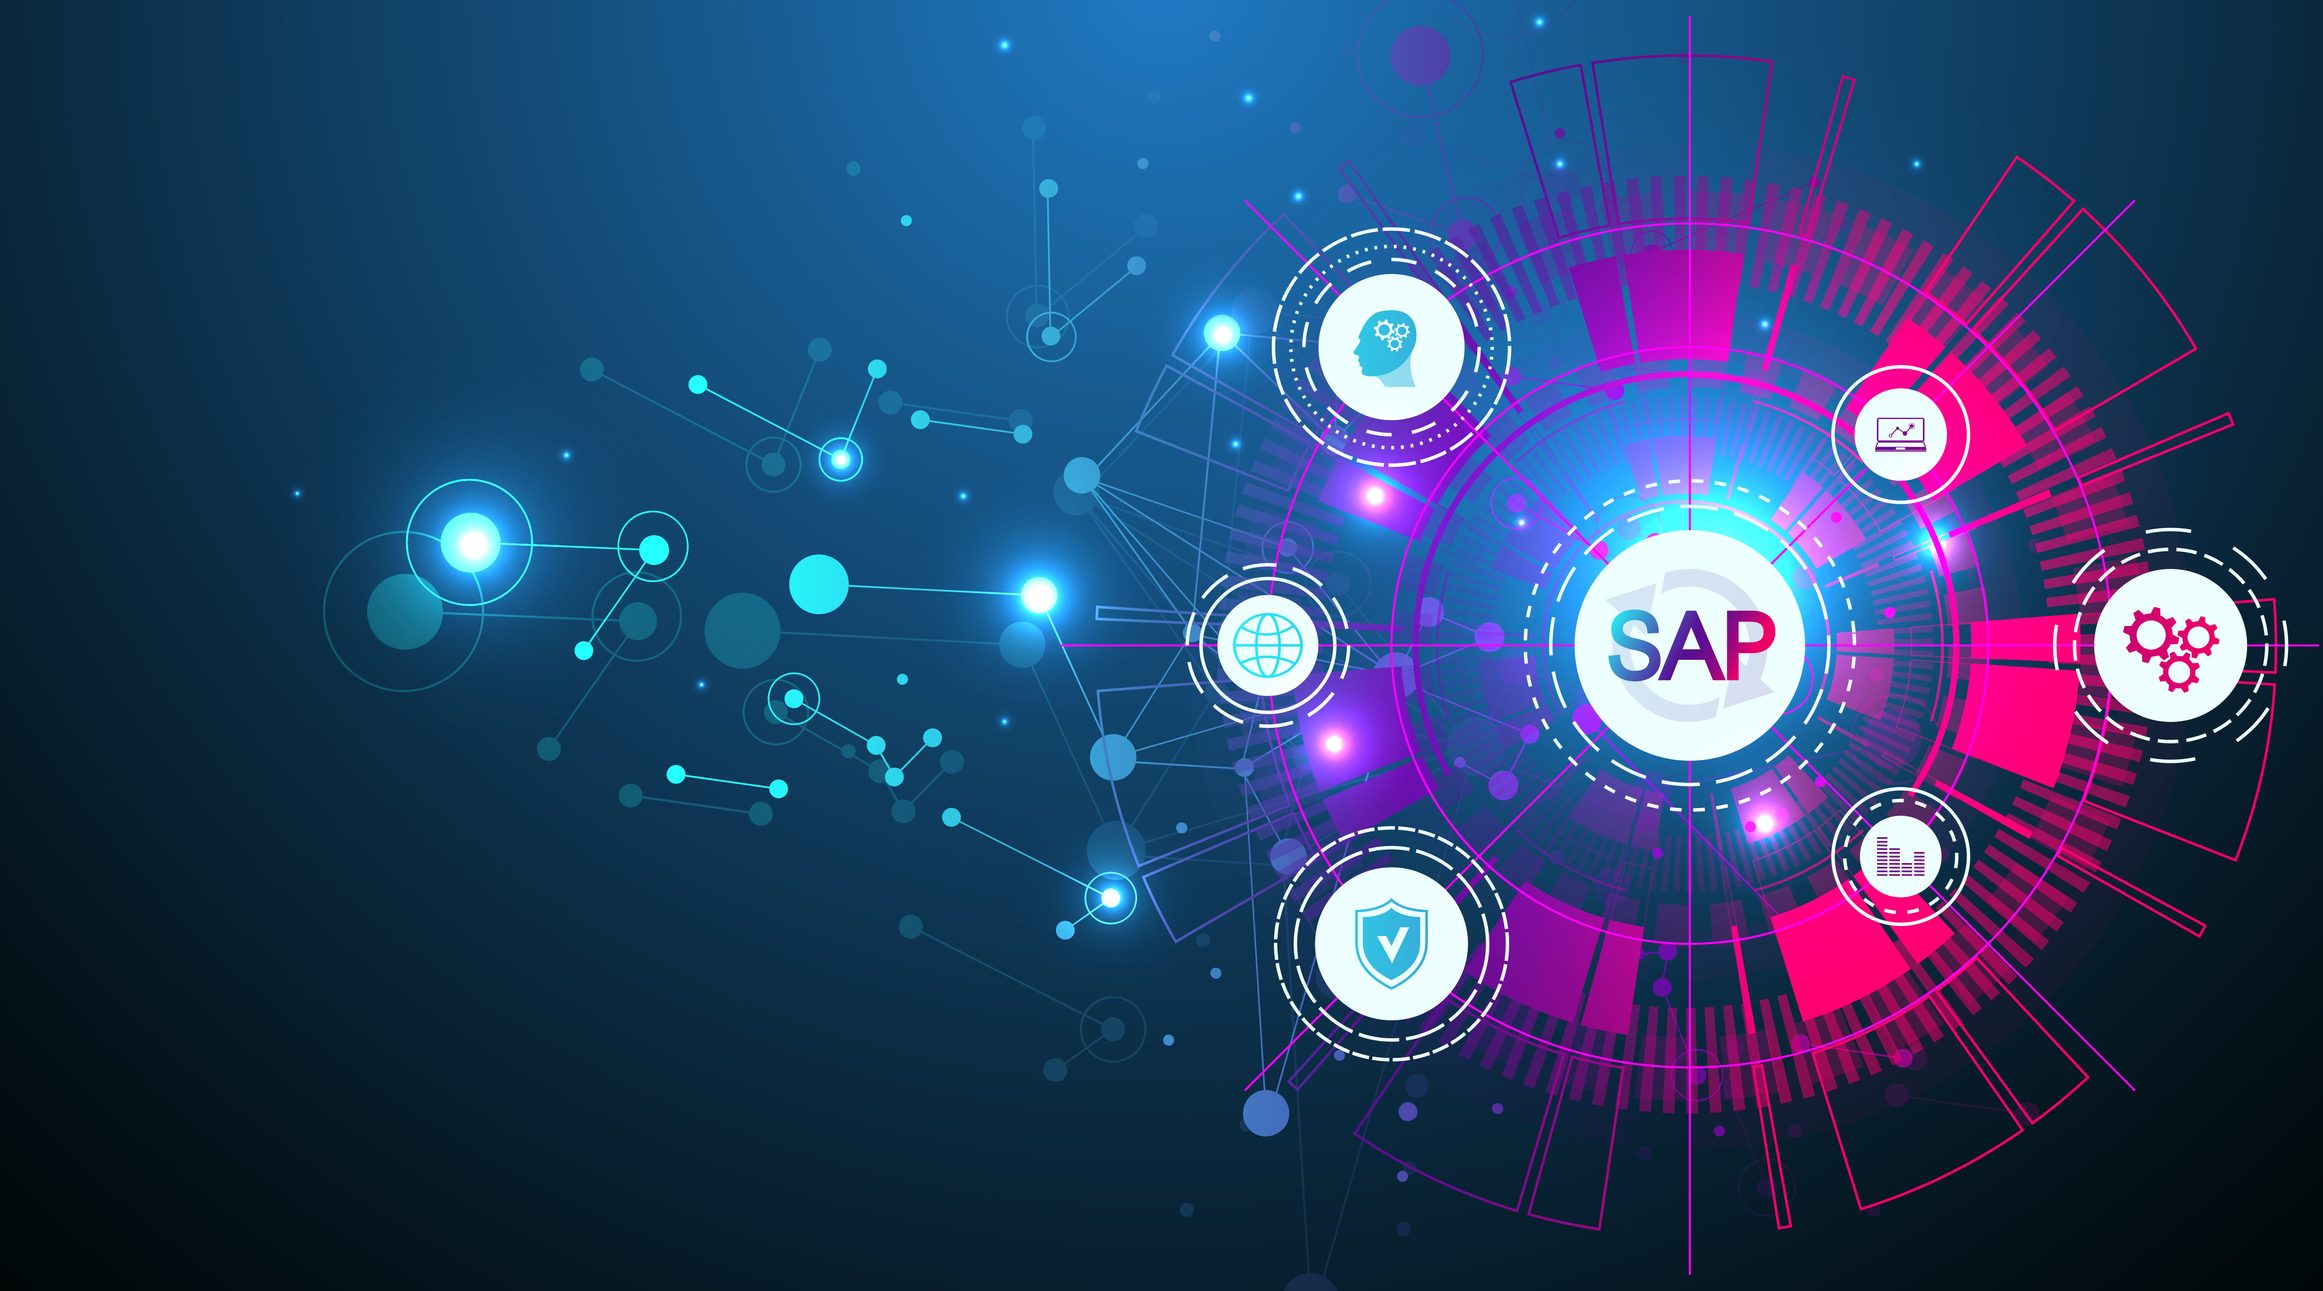 Natural Resource Governance is a SAP® Endorsed App and Now Part of SAP's Industry Cloud